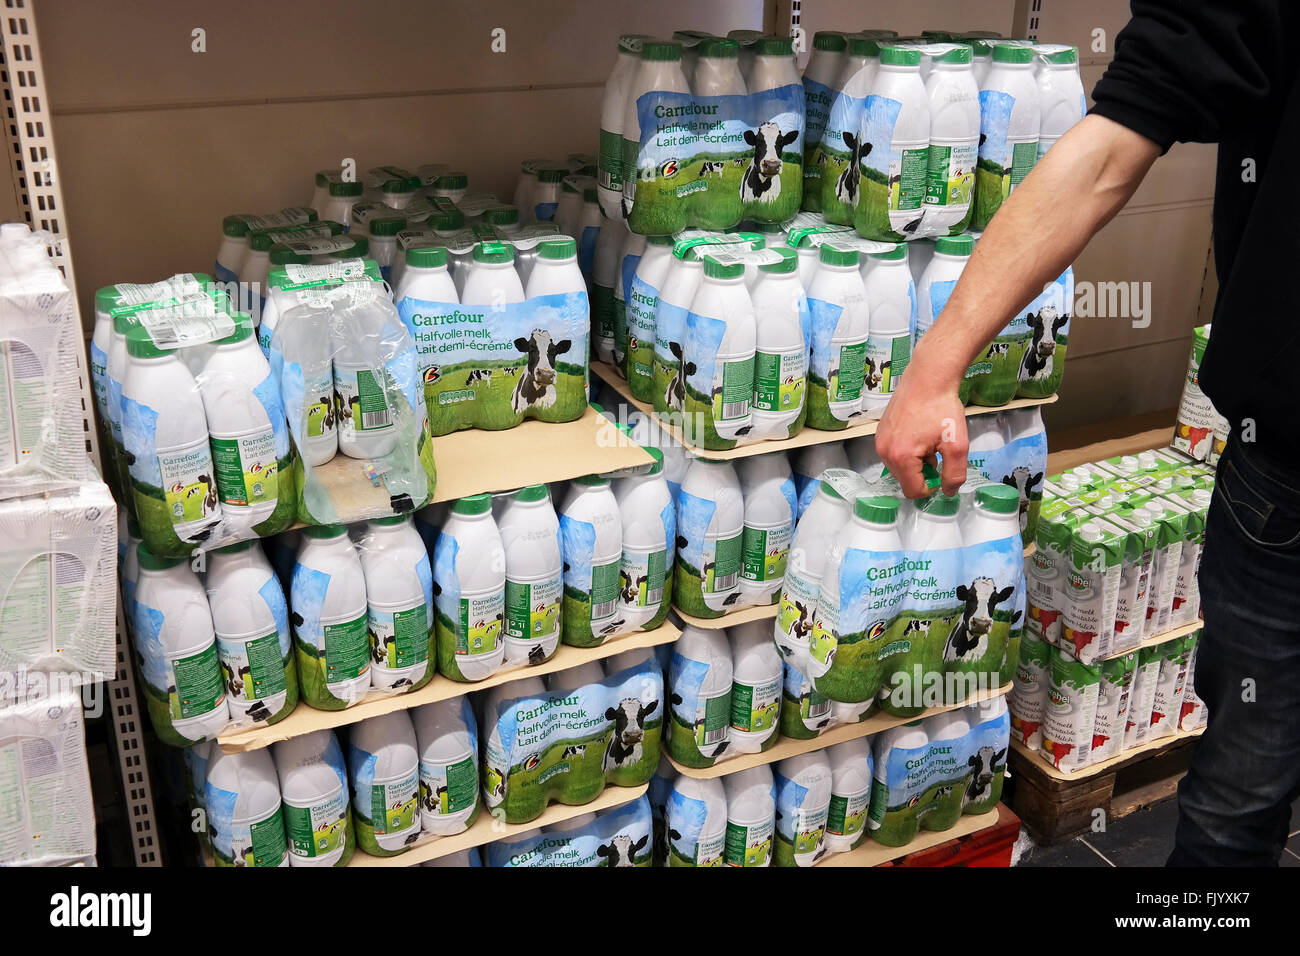 Milk in plastic bottles printed with cows. - Stock Image